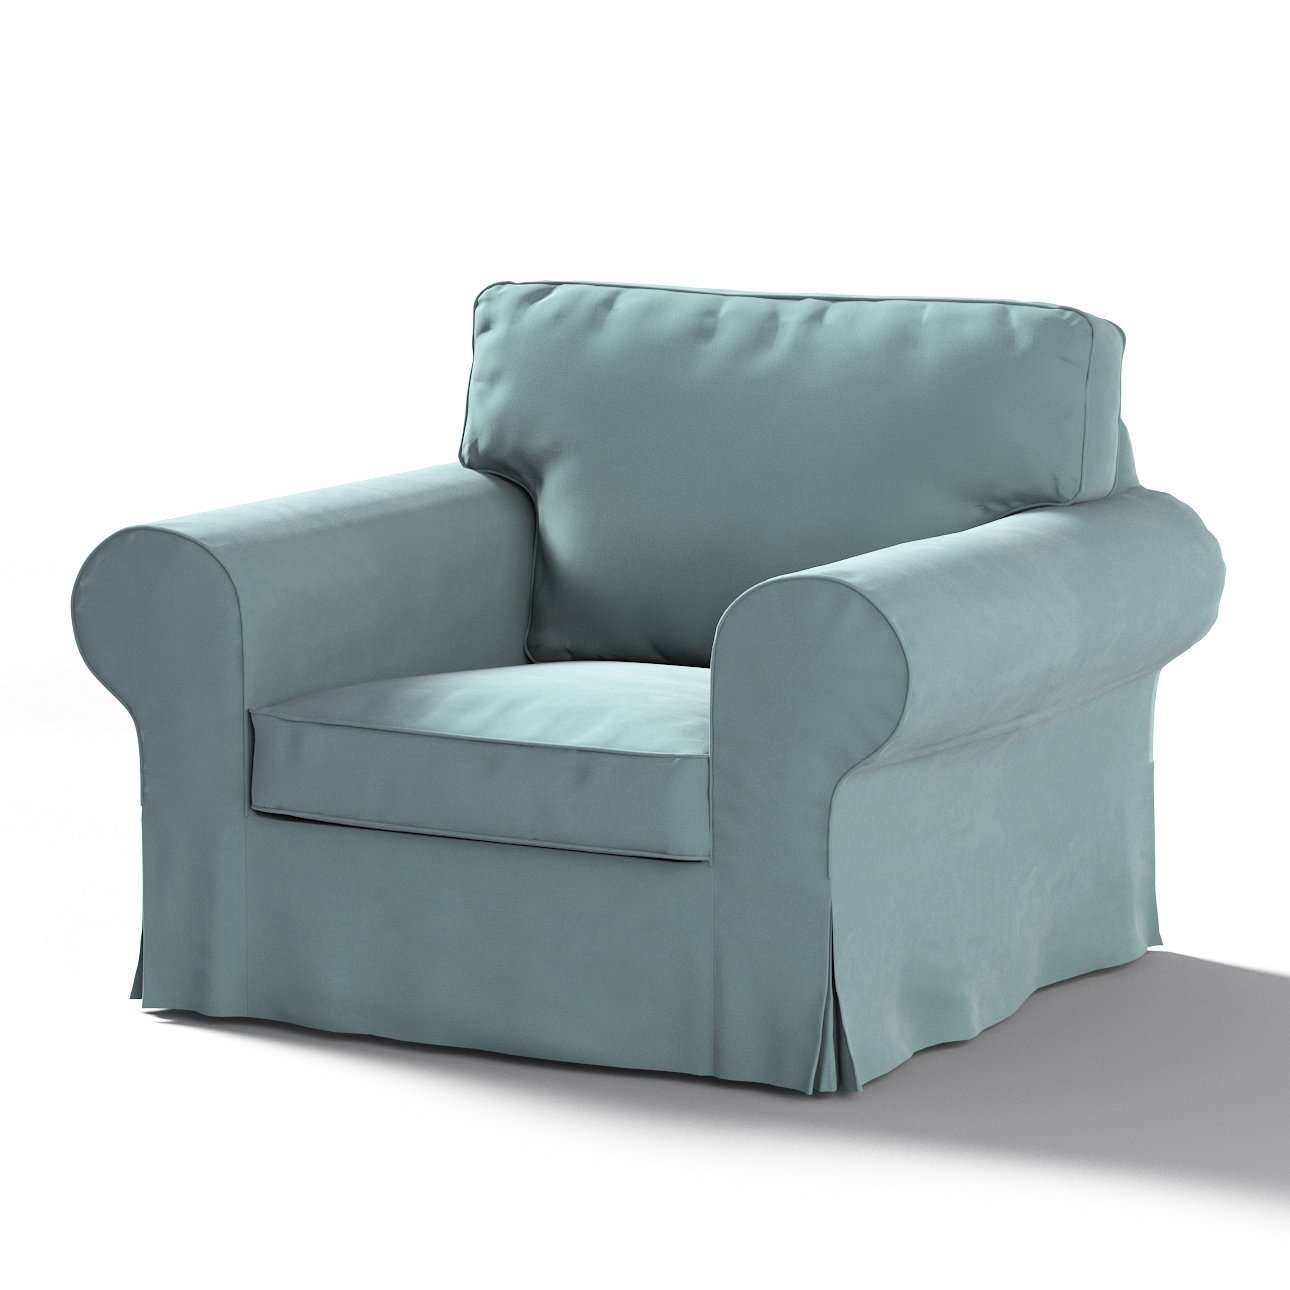 Ektorp armchair cover in collection Velvet, fabric: 704-18